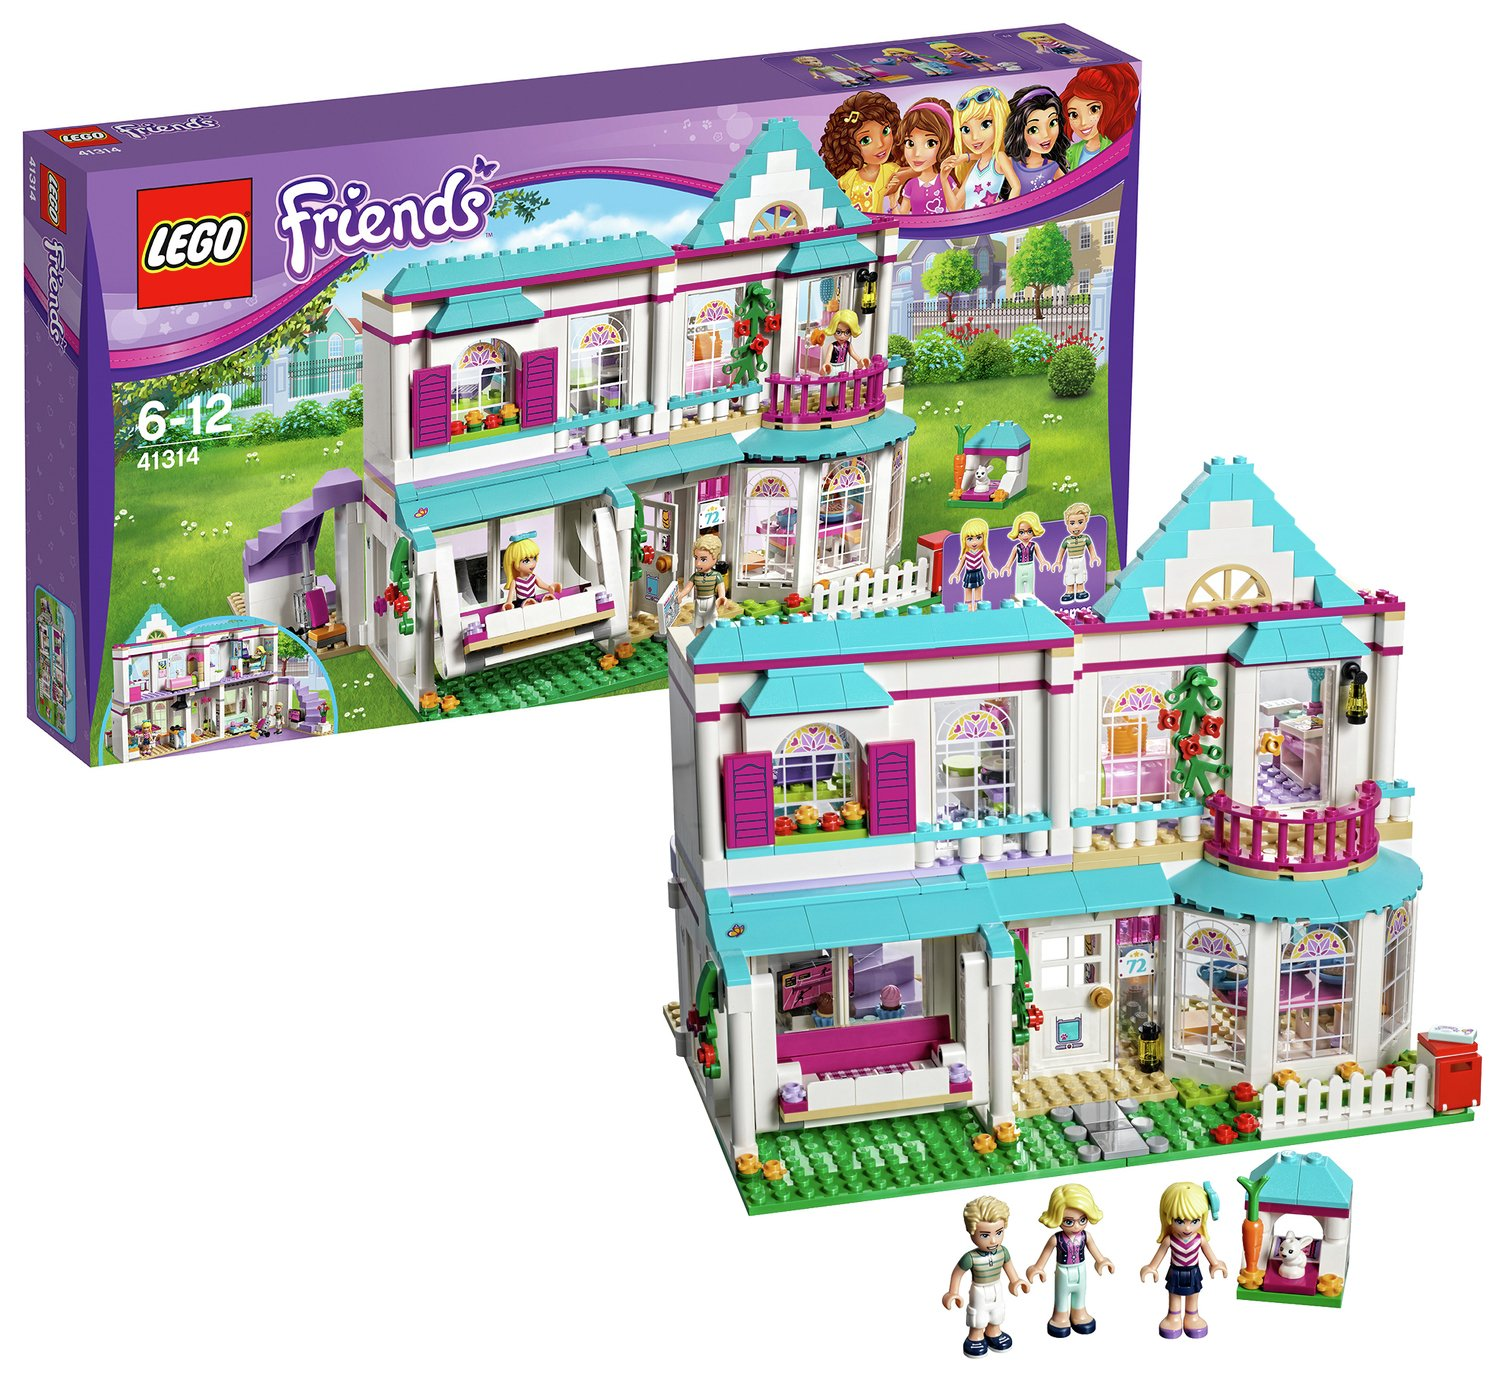 LEGO Friends Stephanie's House - 41314